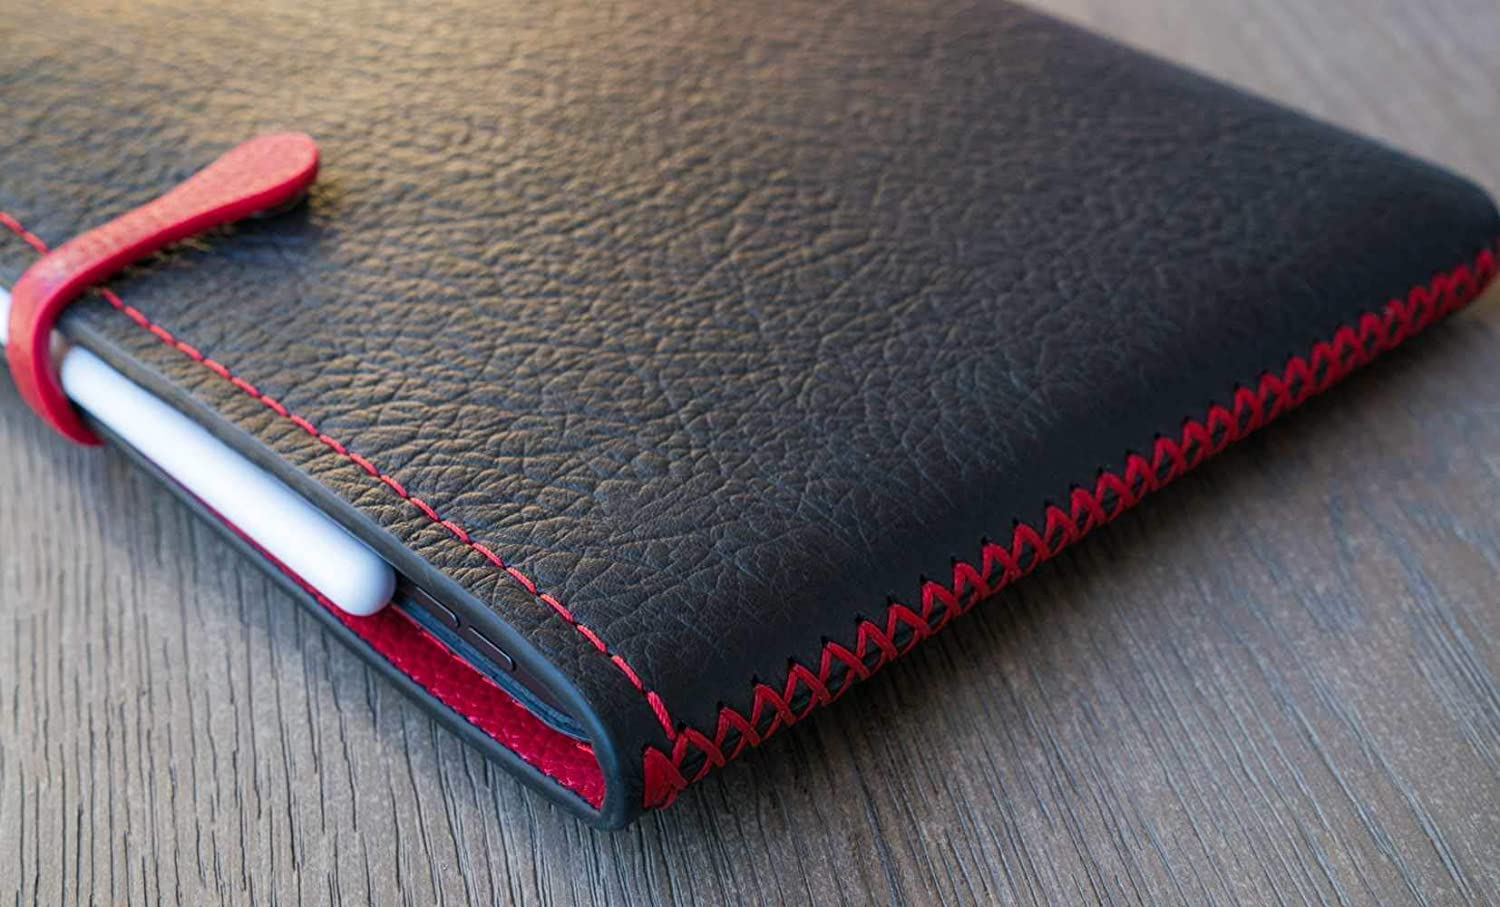 Classic Sleeve for Apple MacBook Pro and iPad Pro, Personalized, Black/Red. (GQ 100 BEST THINGS IN THE WORLD, 2018)